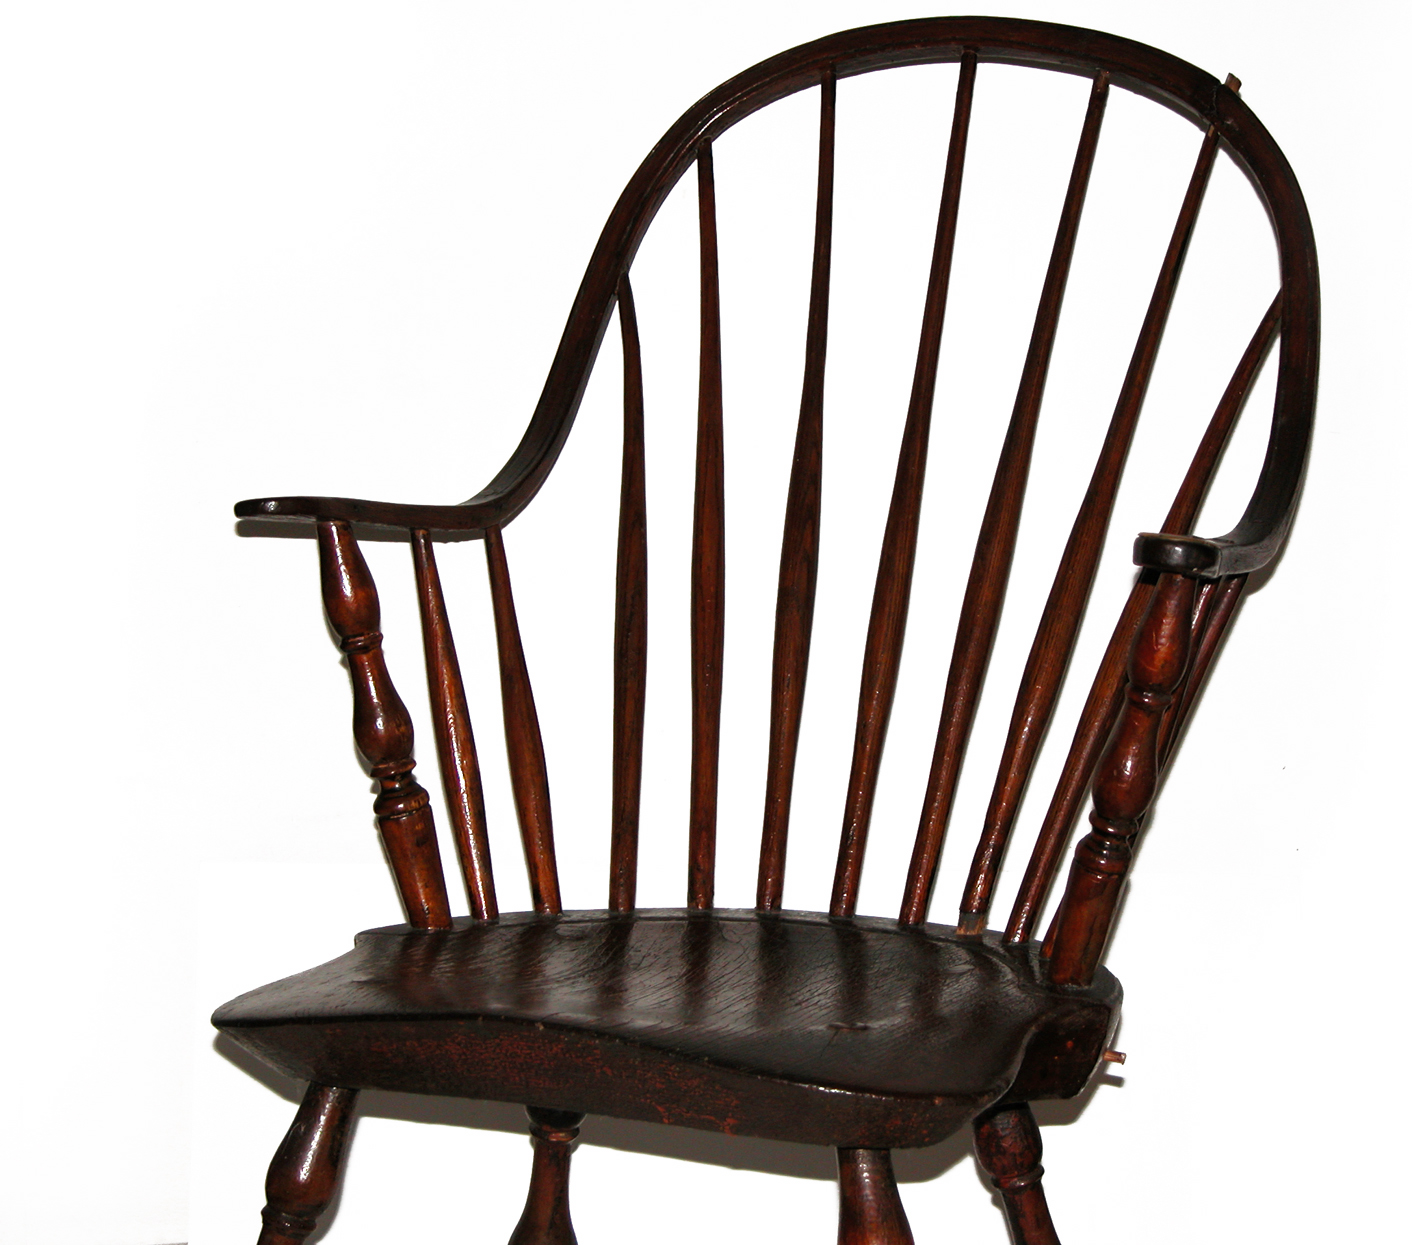 Contemporary Makers: Antique Windsor Chair with Repairs